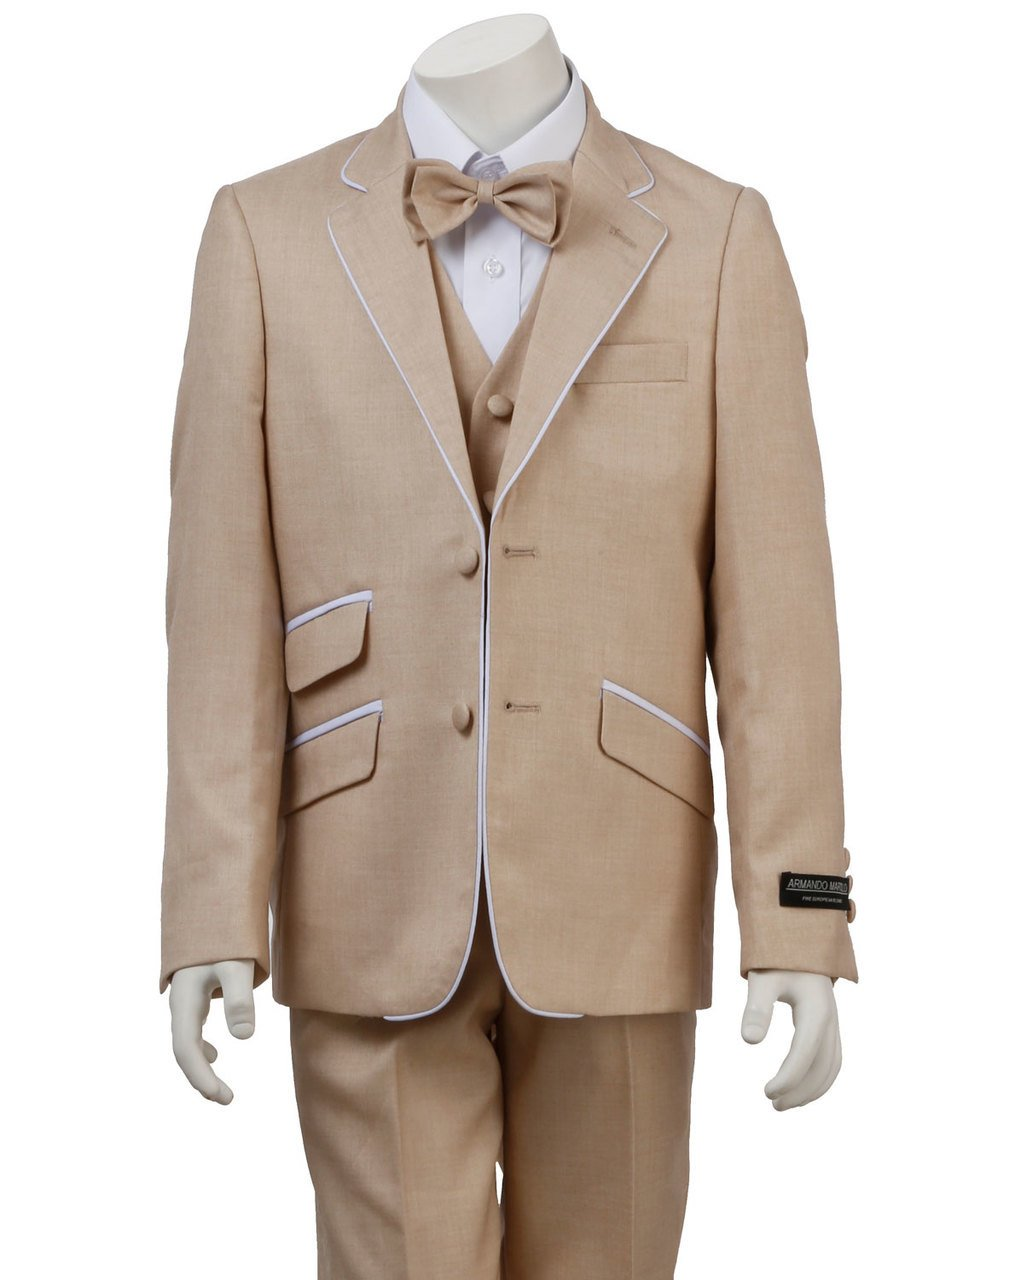 Armando Martillo Boys' Beige Tan Khaki 4 Piece Formal Dress Suit With White Piping Detail Slim Fit For Ring Bearer Summer 2017 Weddings Proms Communions Graduations Holiday & special Occasions 7